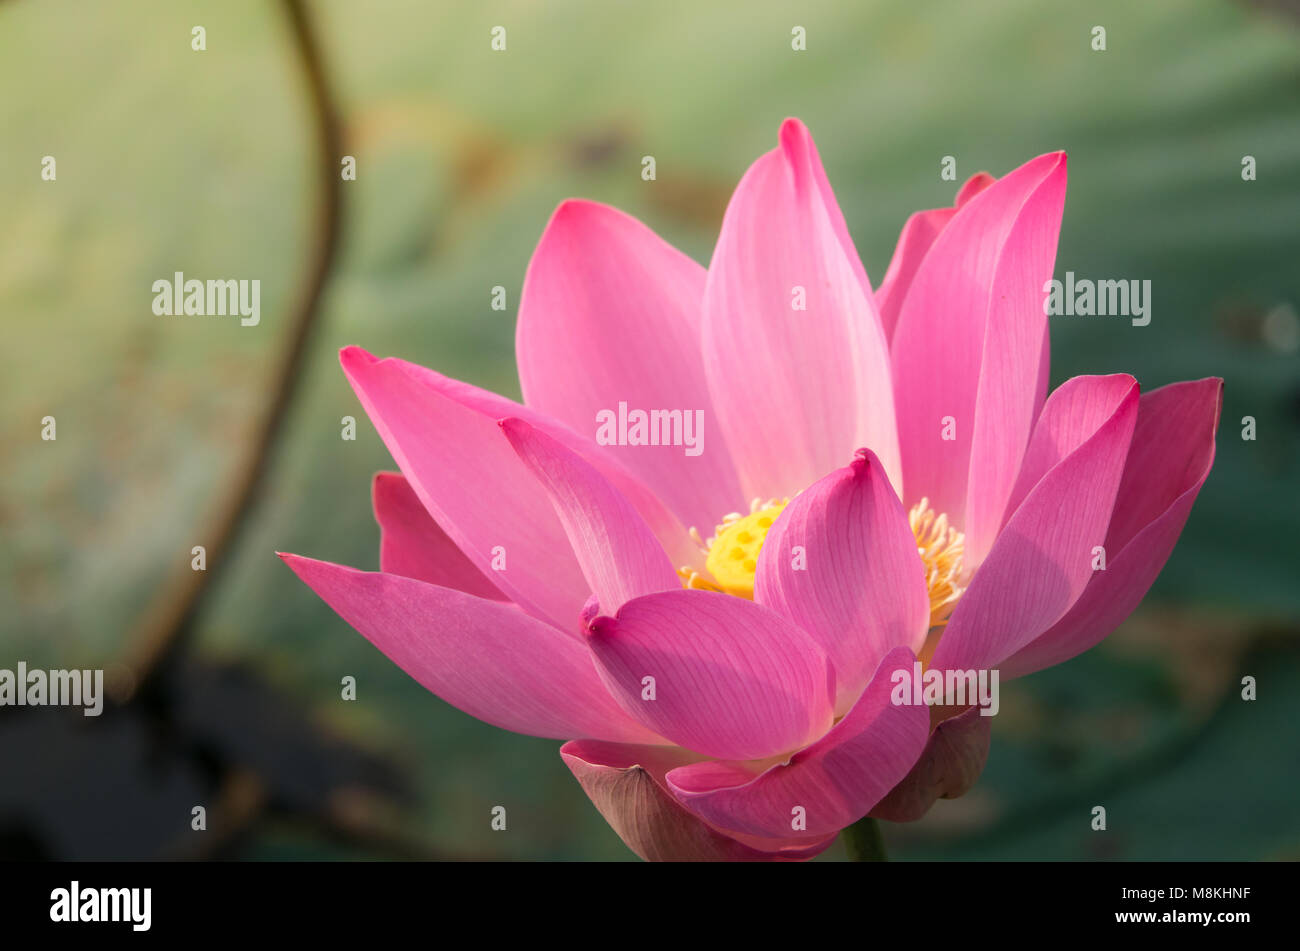 Pink lotus flower royalty high quality free stock footage of a pink lotus flower royalty high quality free stock footage of a beautiful pink lotus flower the background of the pink lotus flowers is green leaf izmirmasajfo